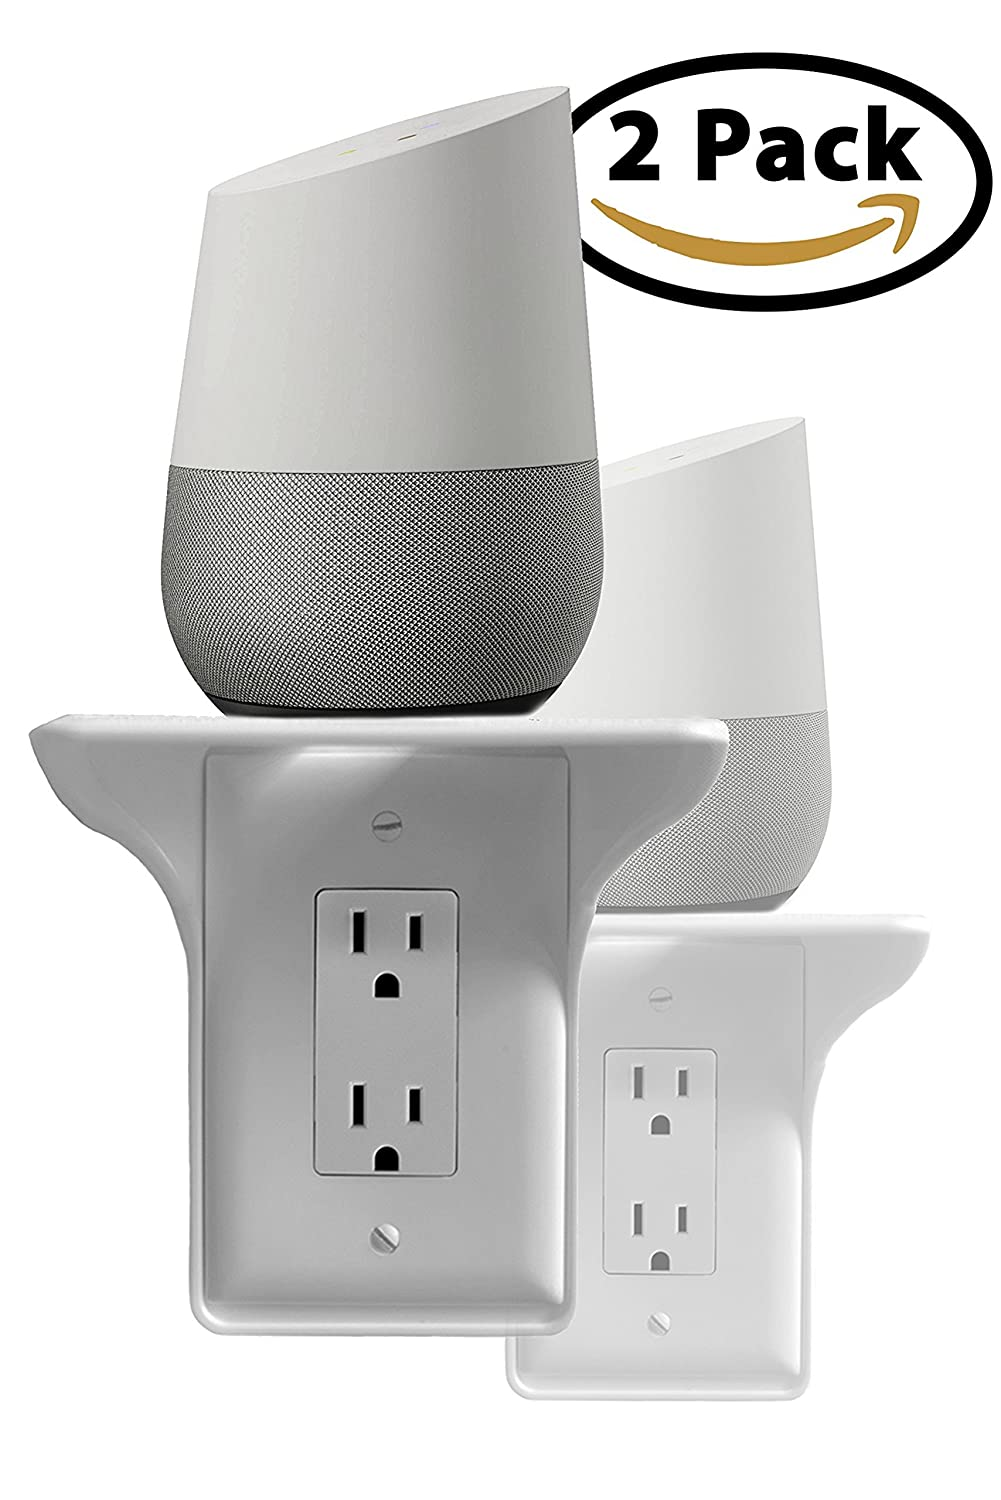 Storage Theory | Power Perch | Ultimate Outlet Shelf | Easy Installation, No Additional Hardware Required | Holds Up to 10 lbs | White Color | 2 Pack